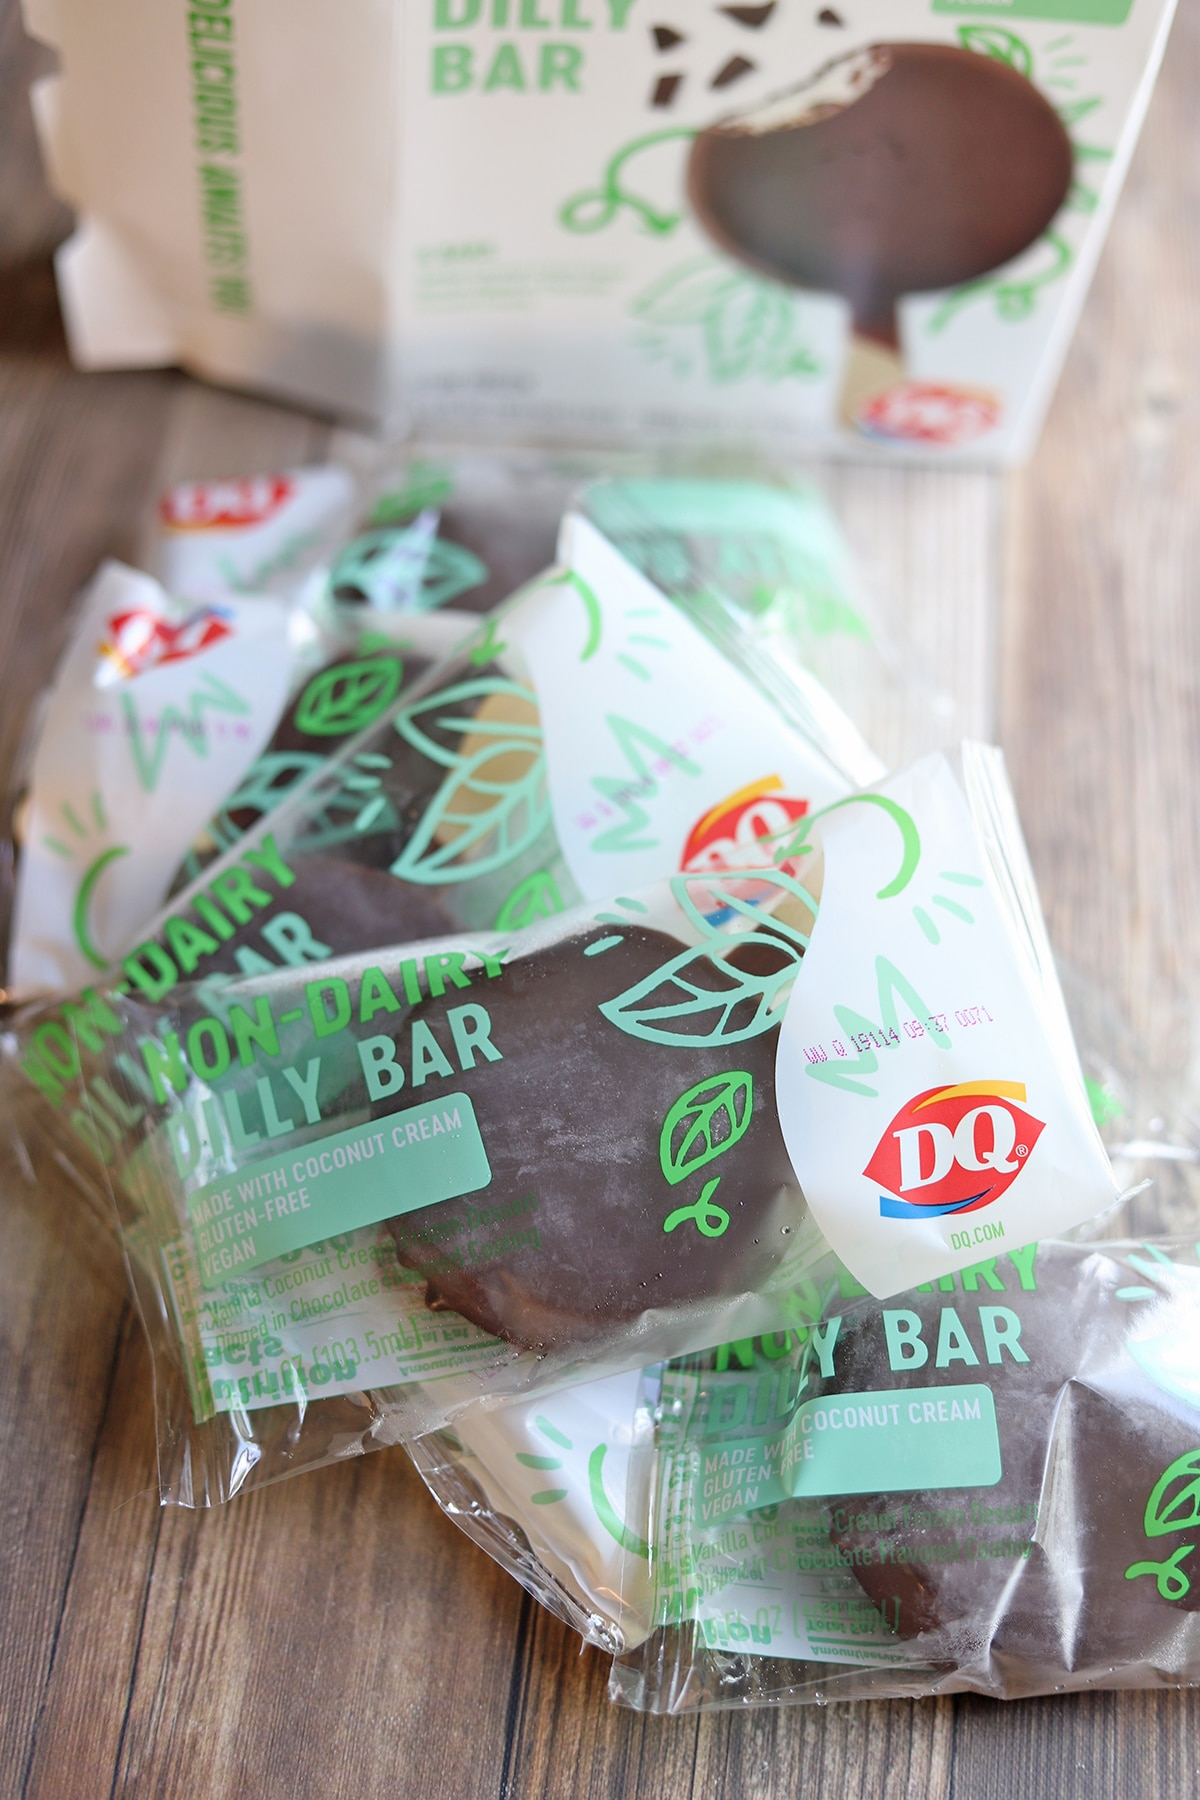 Dilly bars in packaging.